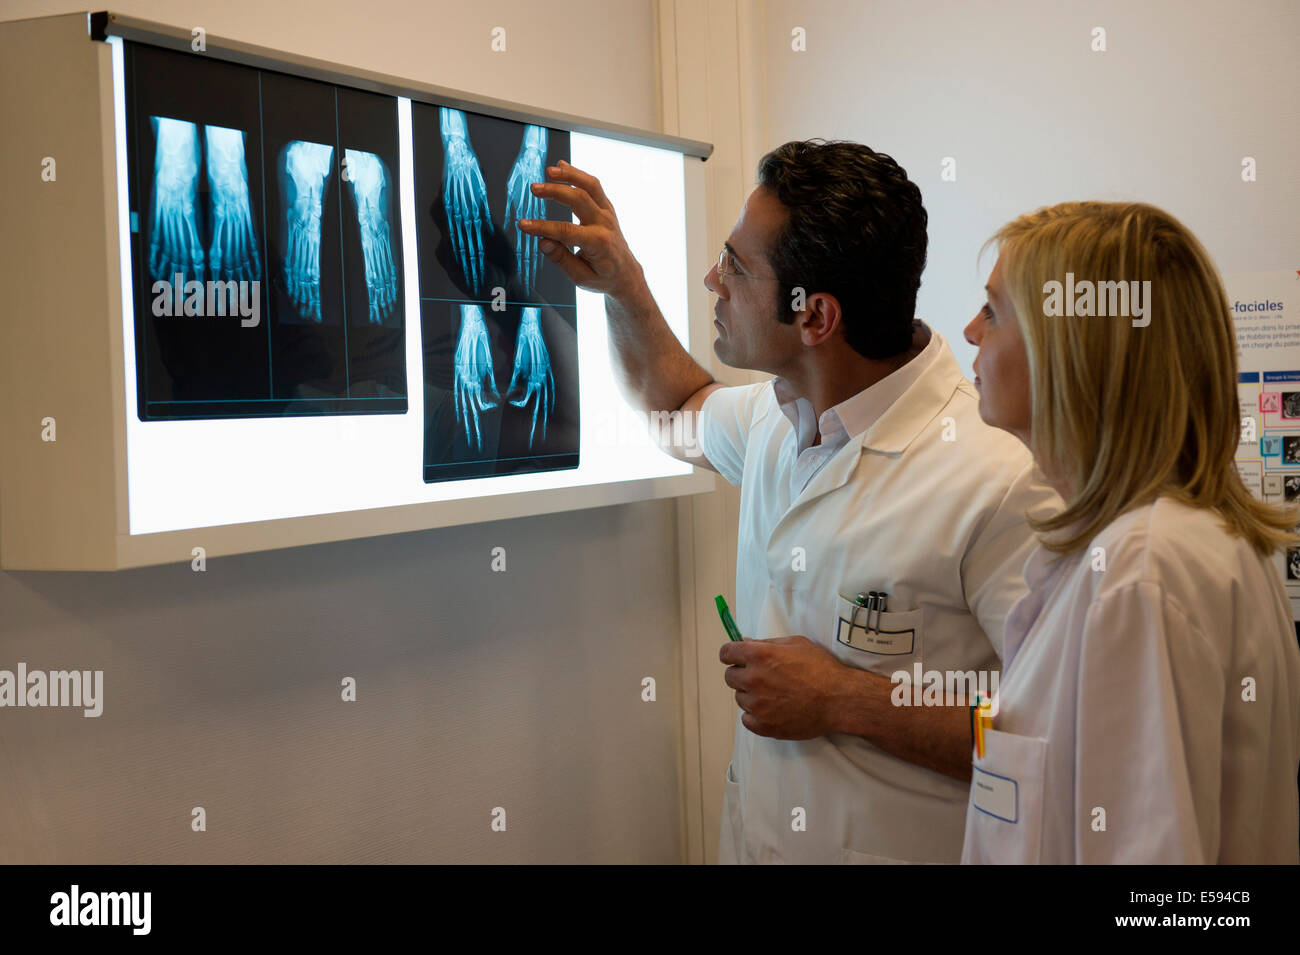 Doctors examining X-ray report in hospital - Stock Image